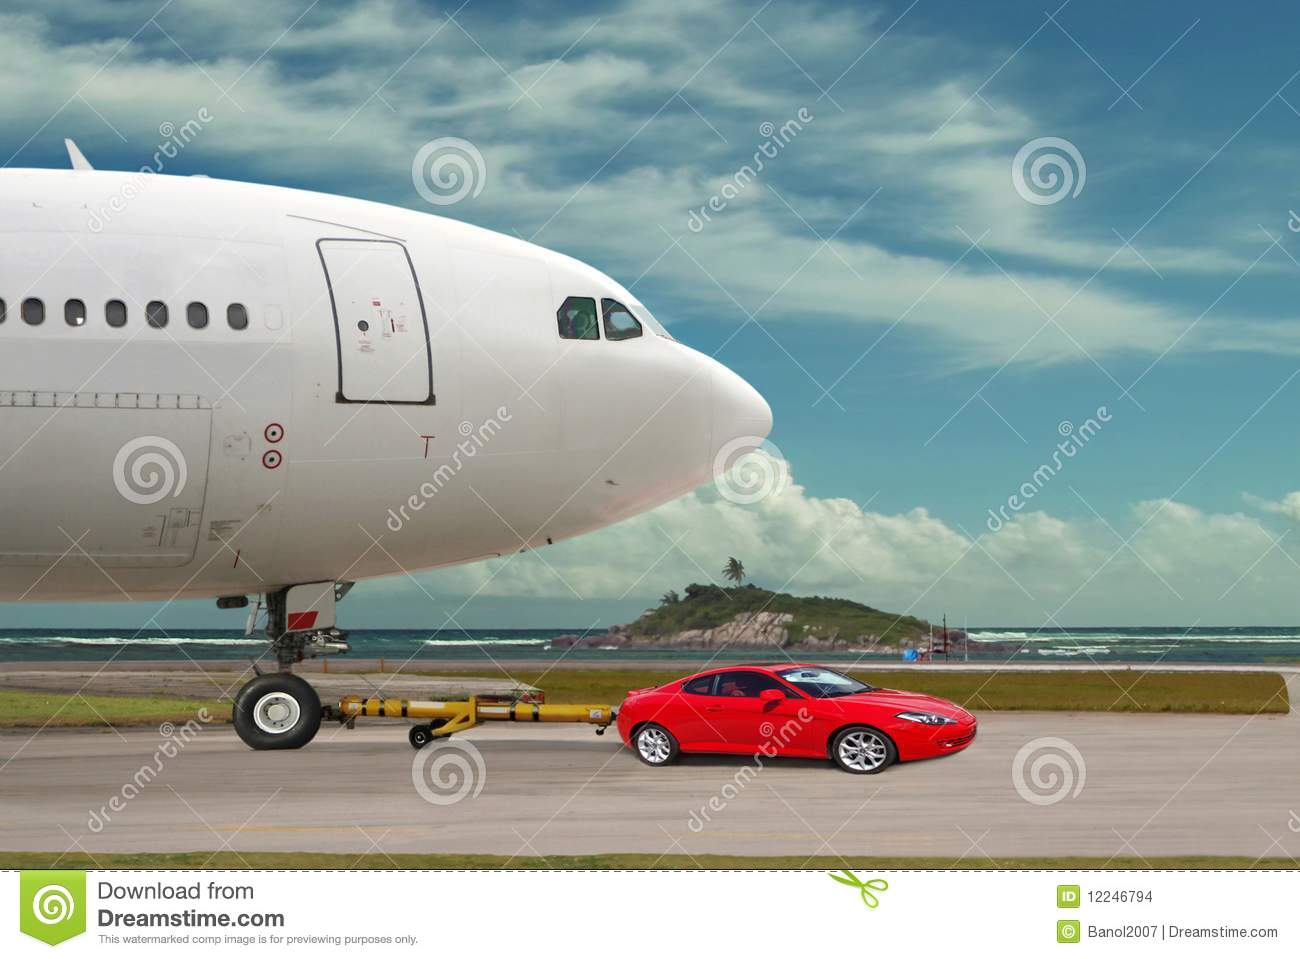 Big Red Towing >> Red Car Is Towing Airplane. Leader. Concept. Stock Photo - Image: 12246794